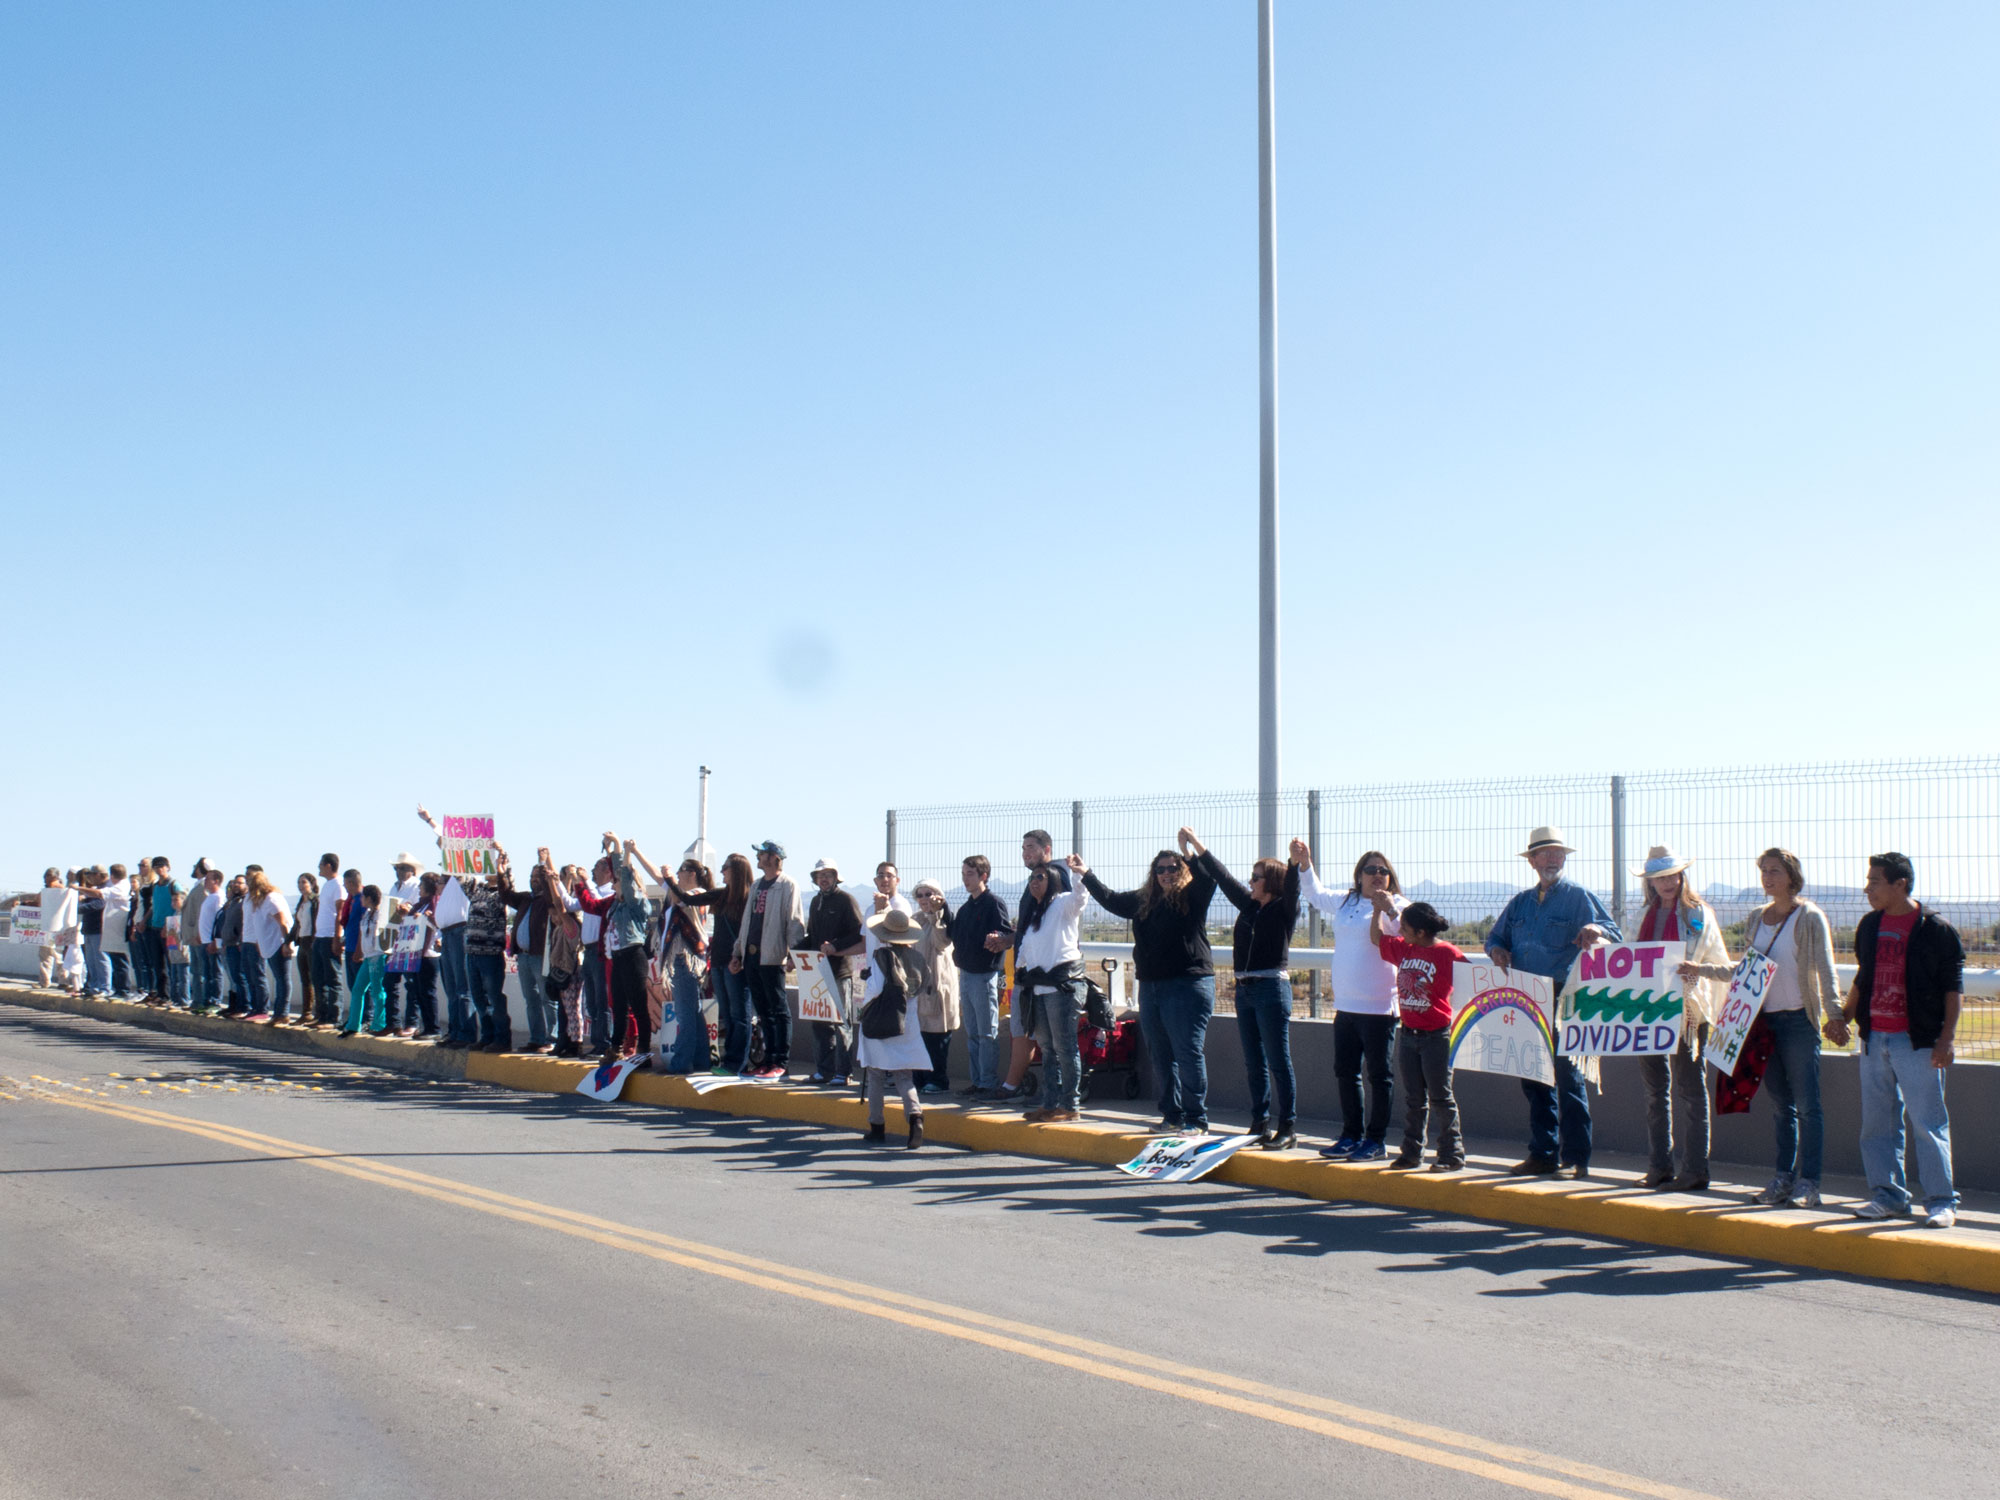 West Texans and Ojinaga, Mexico residents hold hands across the international bridge in a show of mutual solidarity.